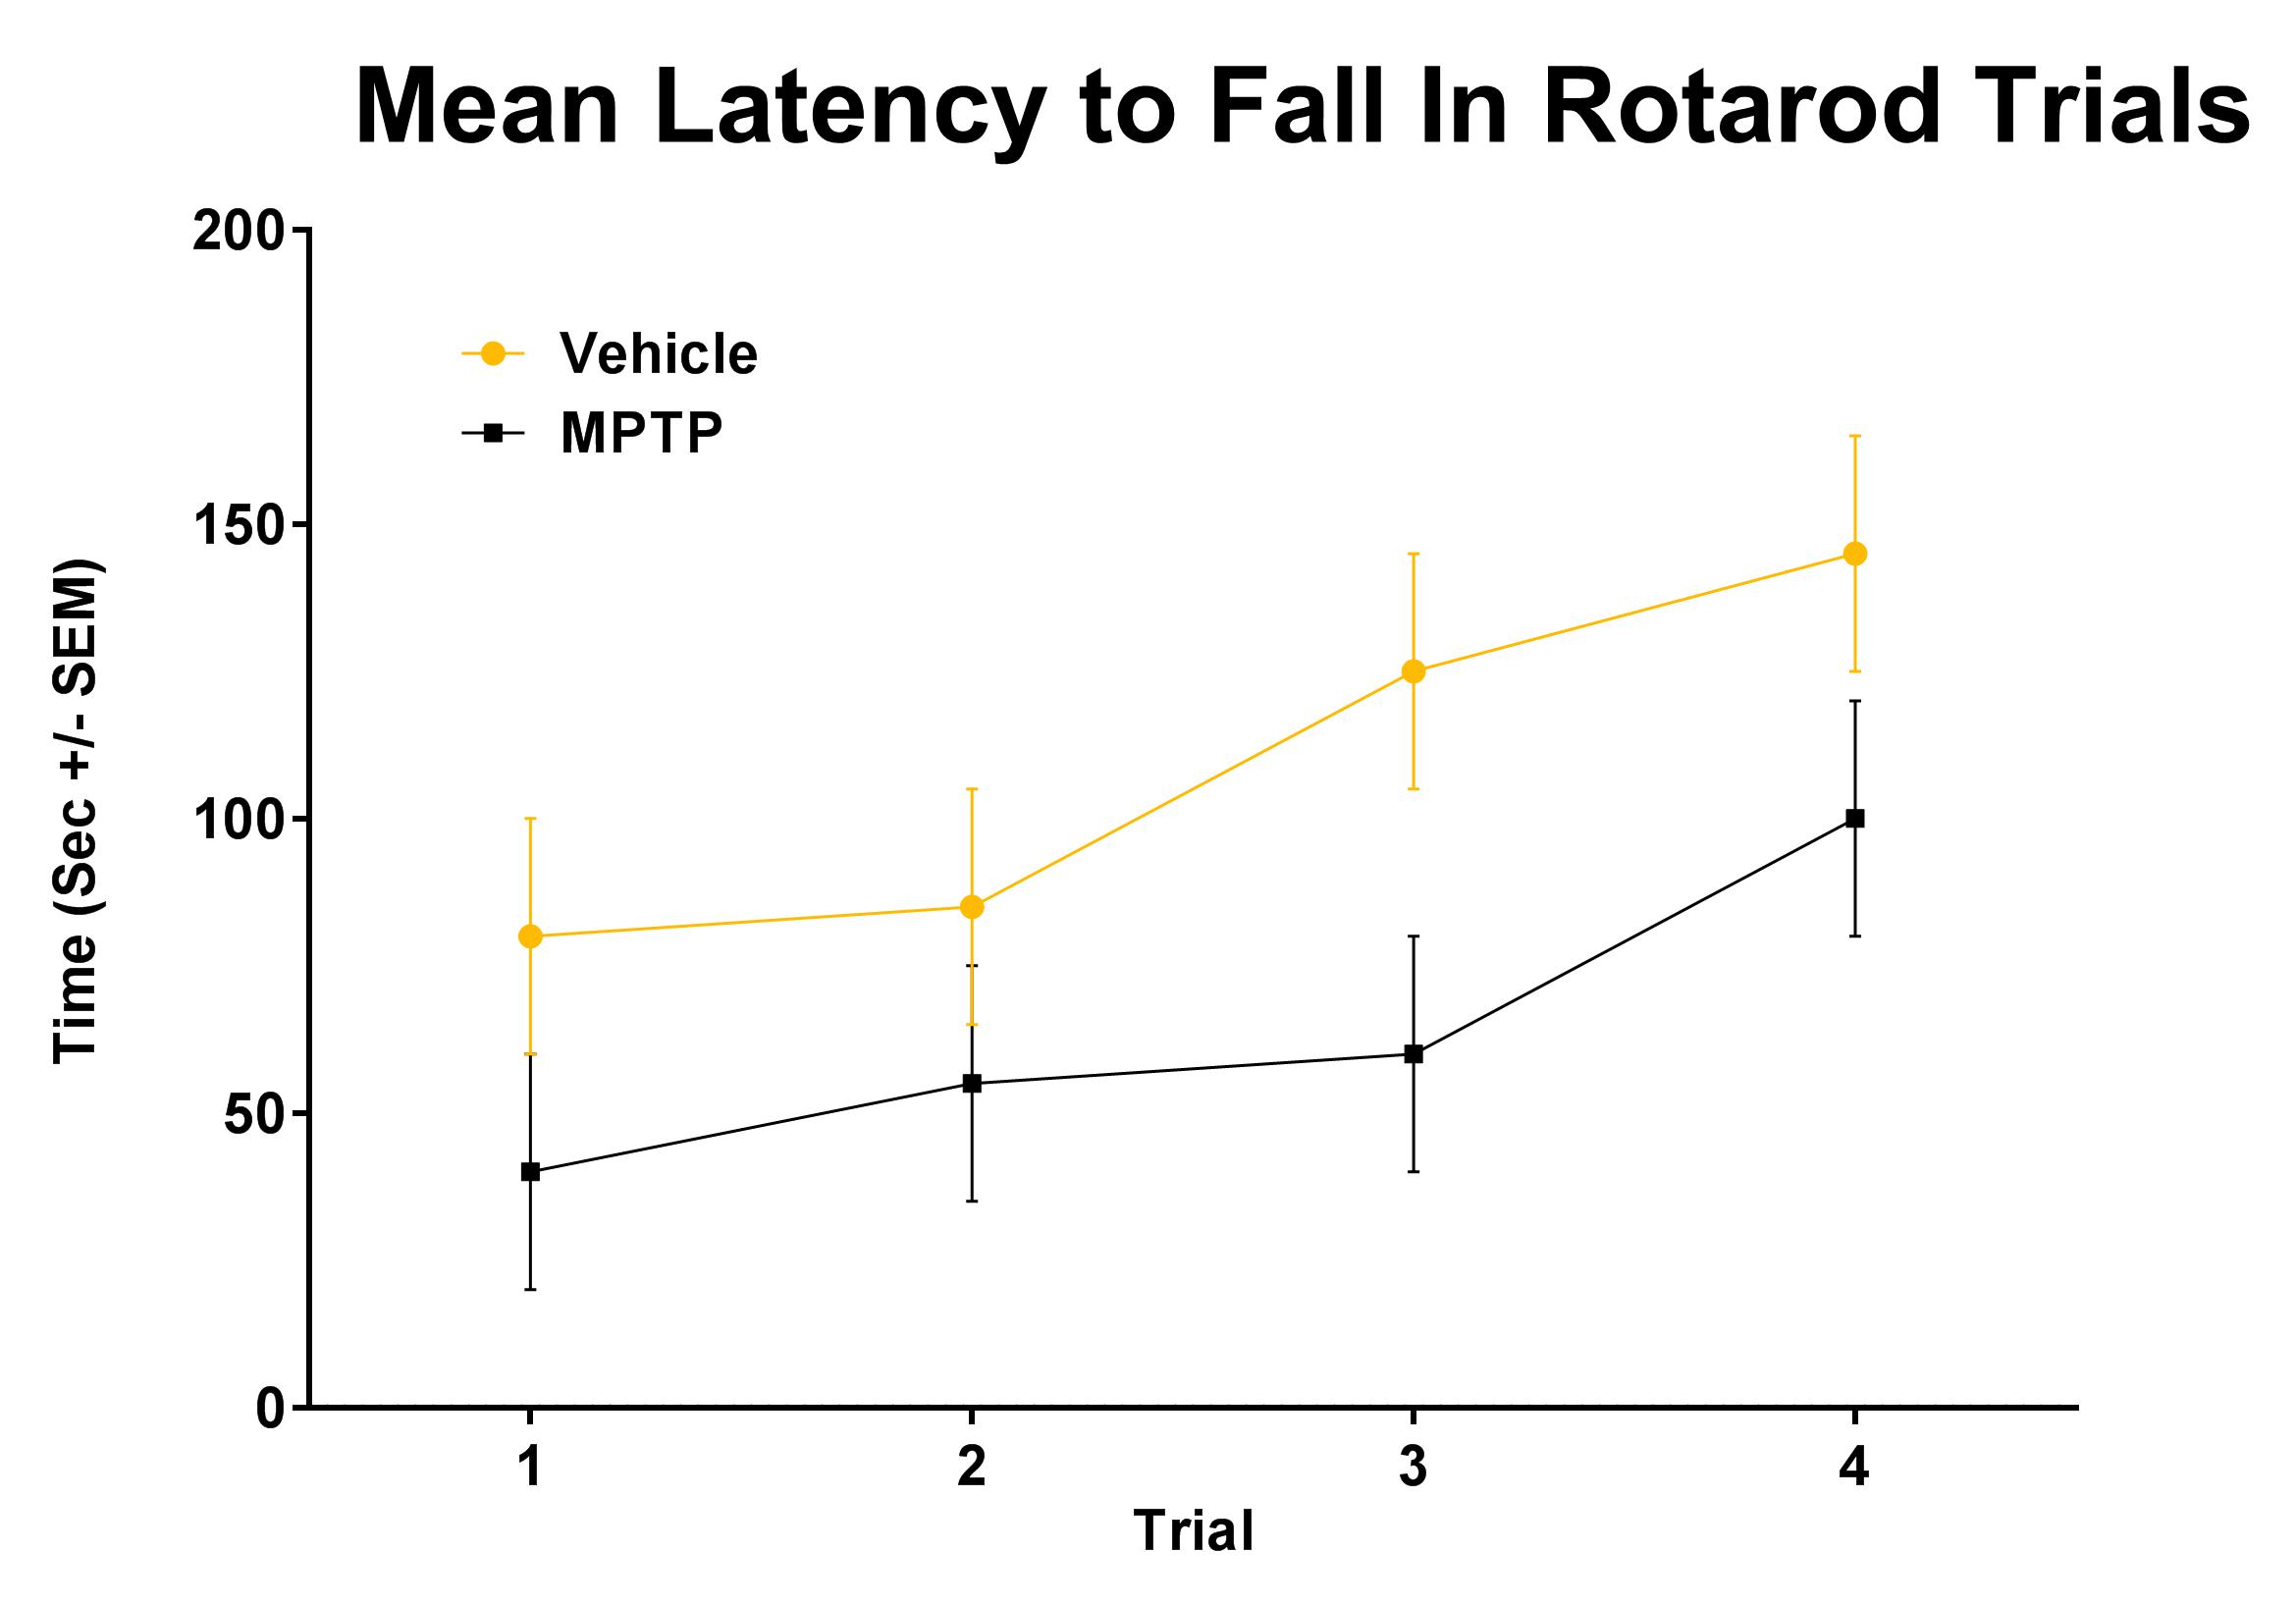 Mean latency to fall in rotarod trials